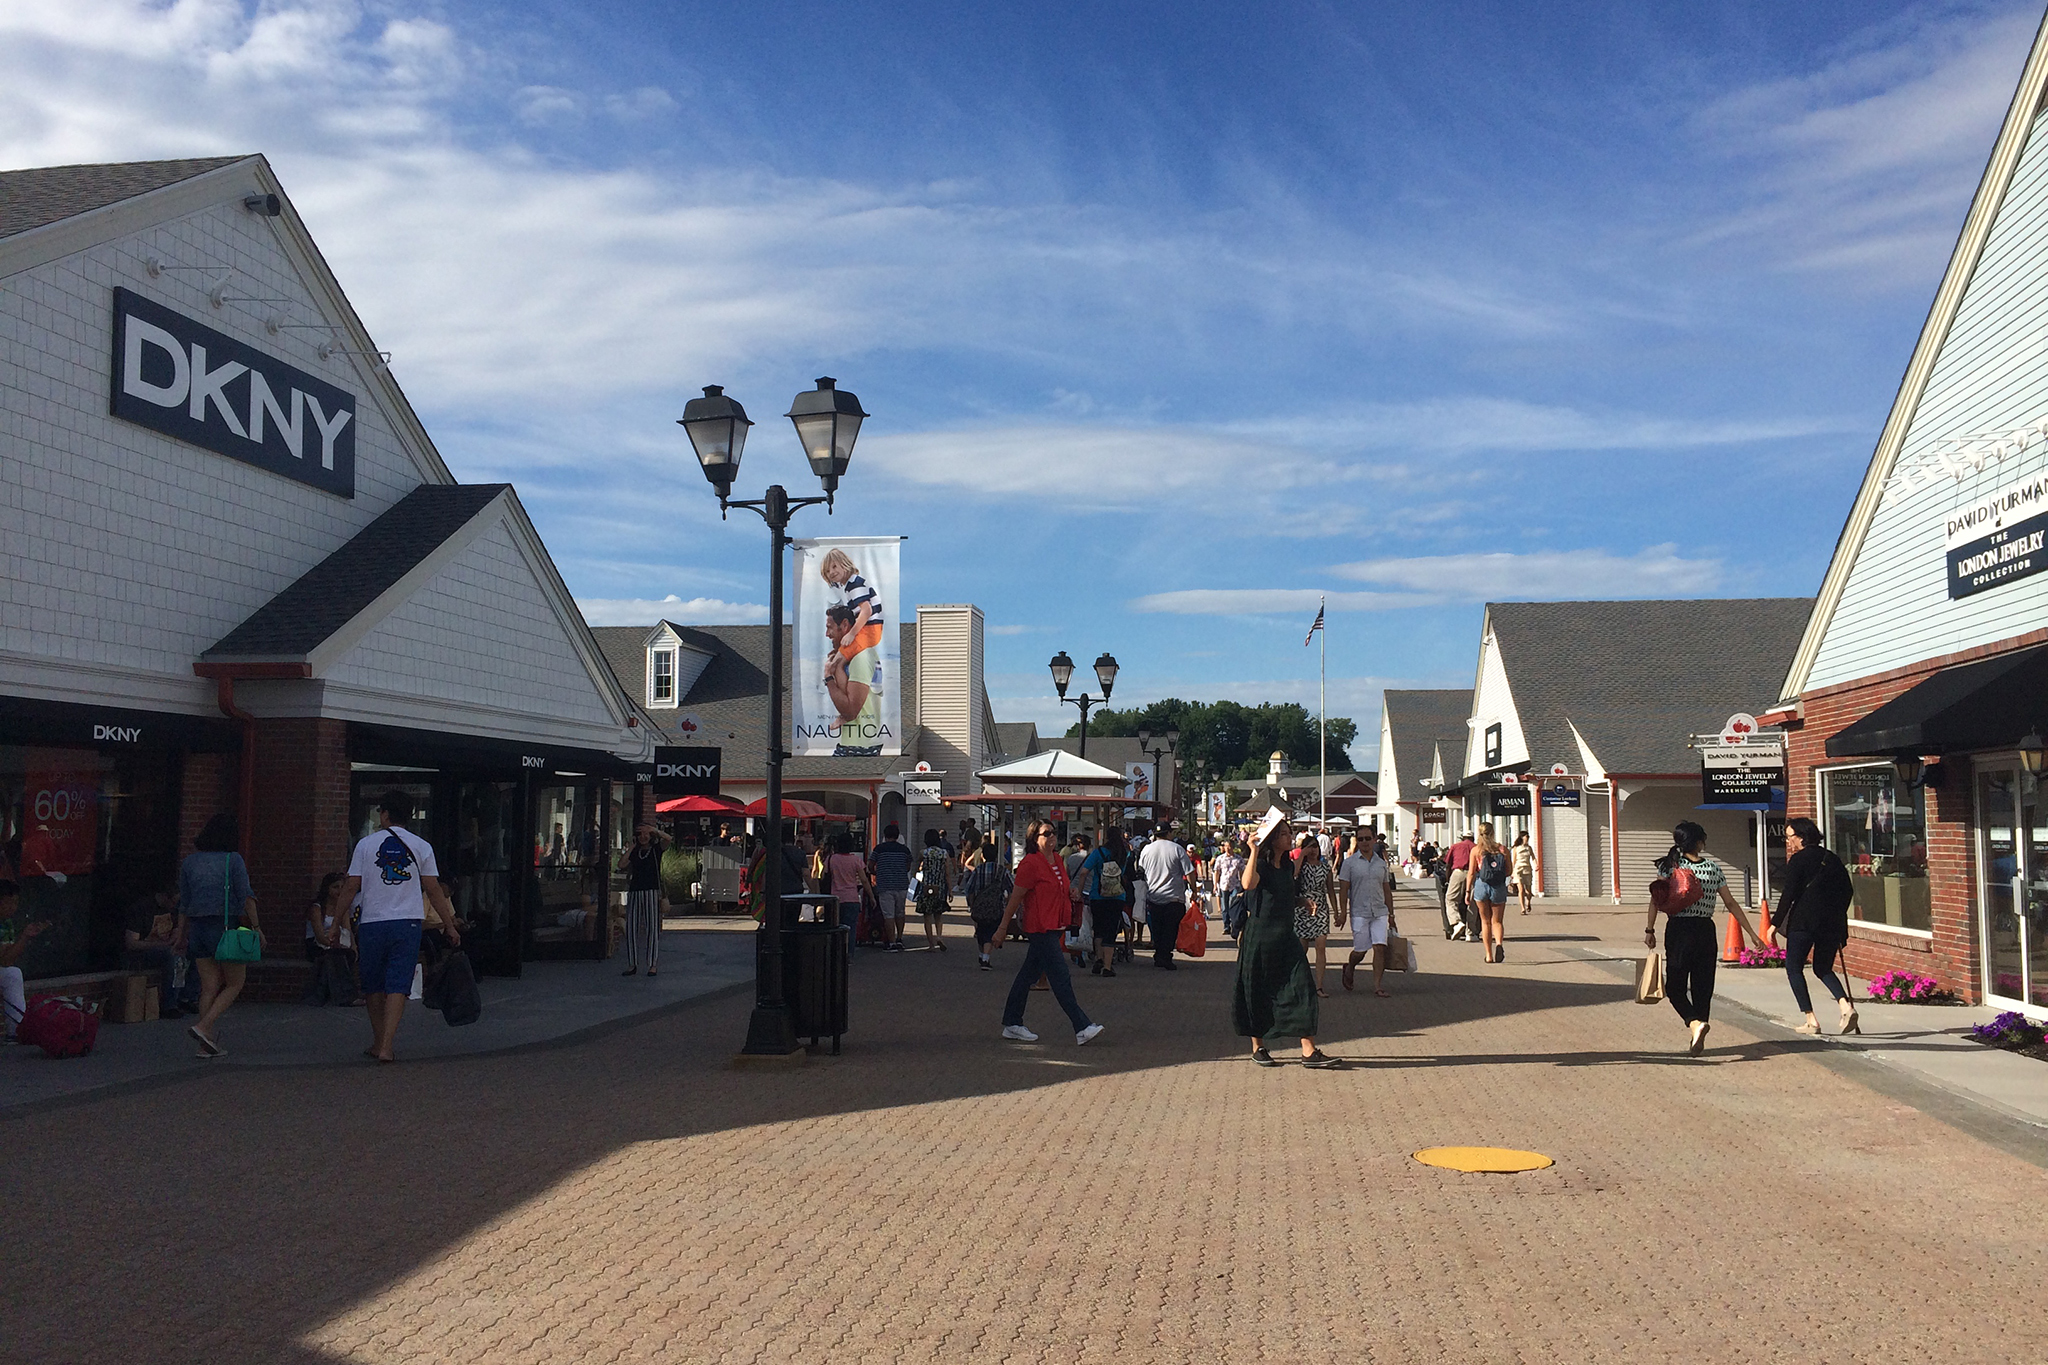 Find the best outlet shopping in New York. Get up to date information, sales and deals for every outlet mall in the state of New York. Get up to date information, sales and deals for every outlet mall in the state of New York.